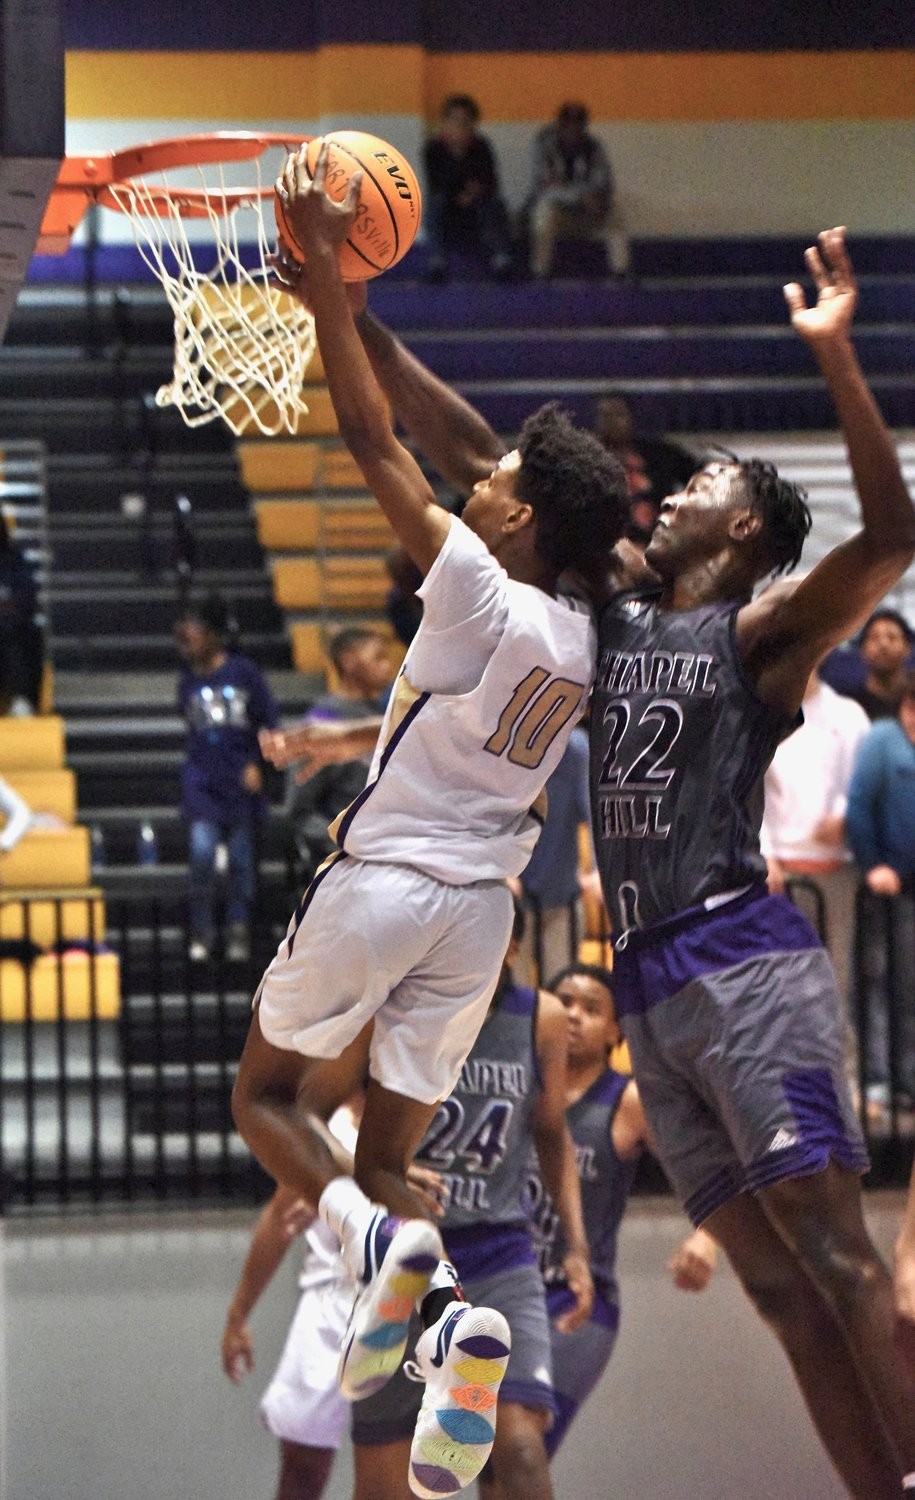 Cartersville senior Micah Tart goes up for a contested layup against Chapel Hill during Saturday's game at The Storm Center. Tart had 16 points in an 82-79 double-overtime loss.